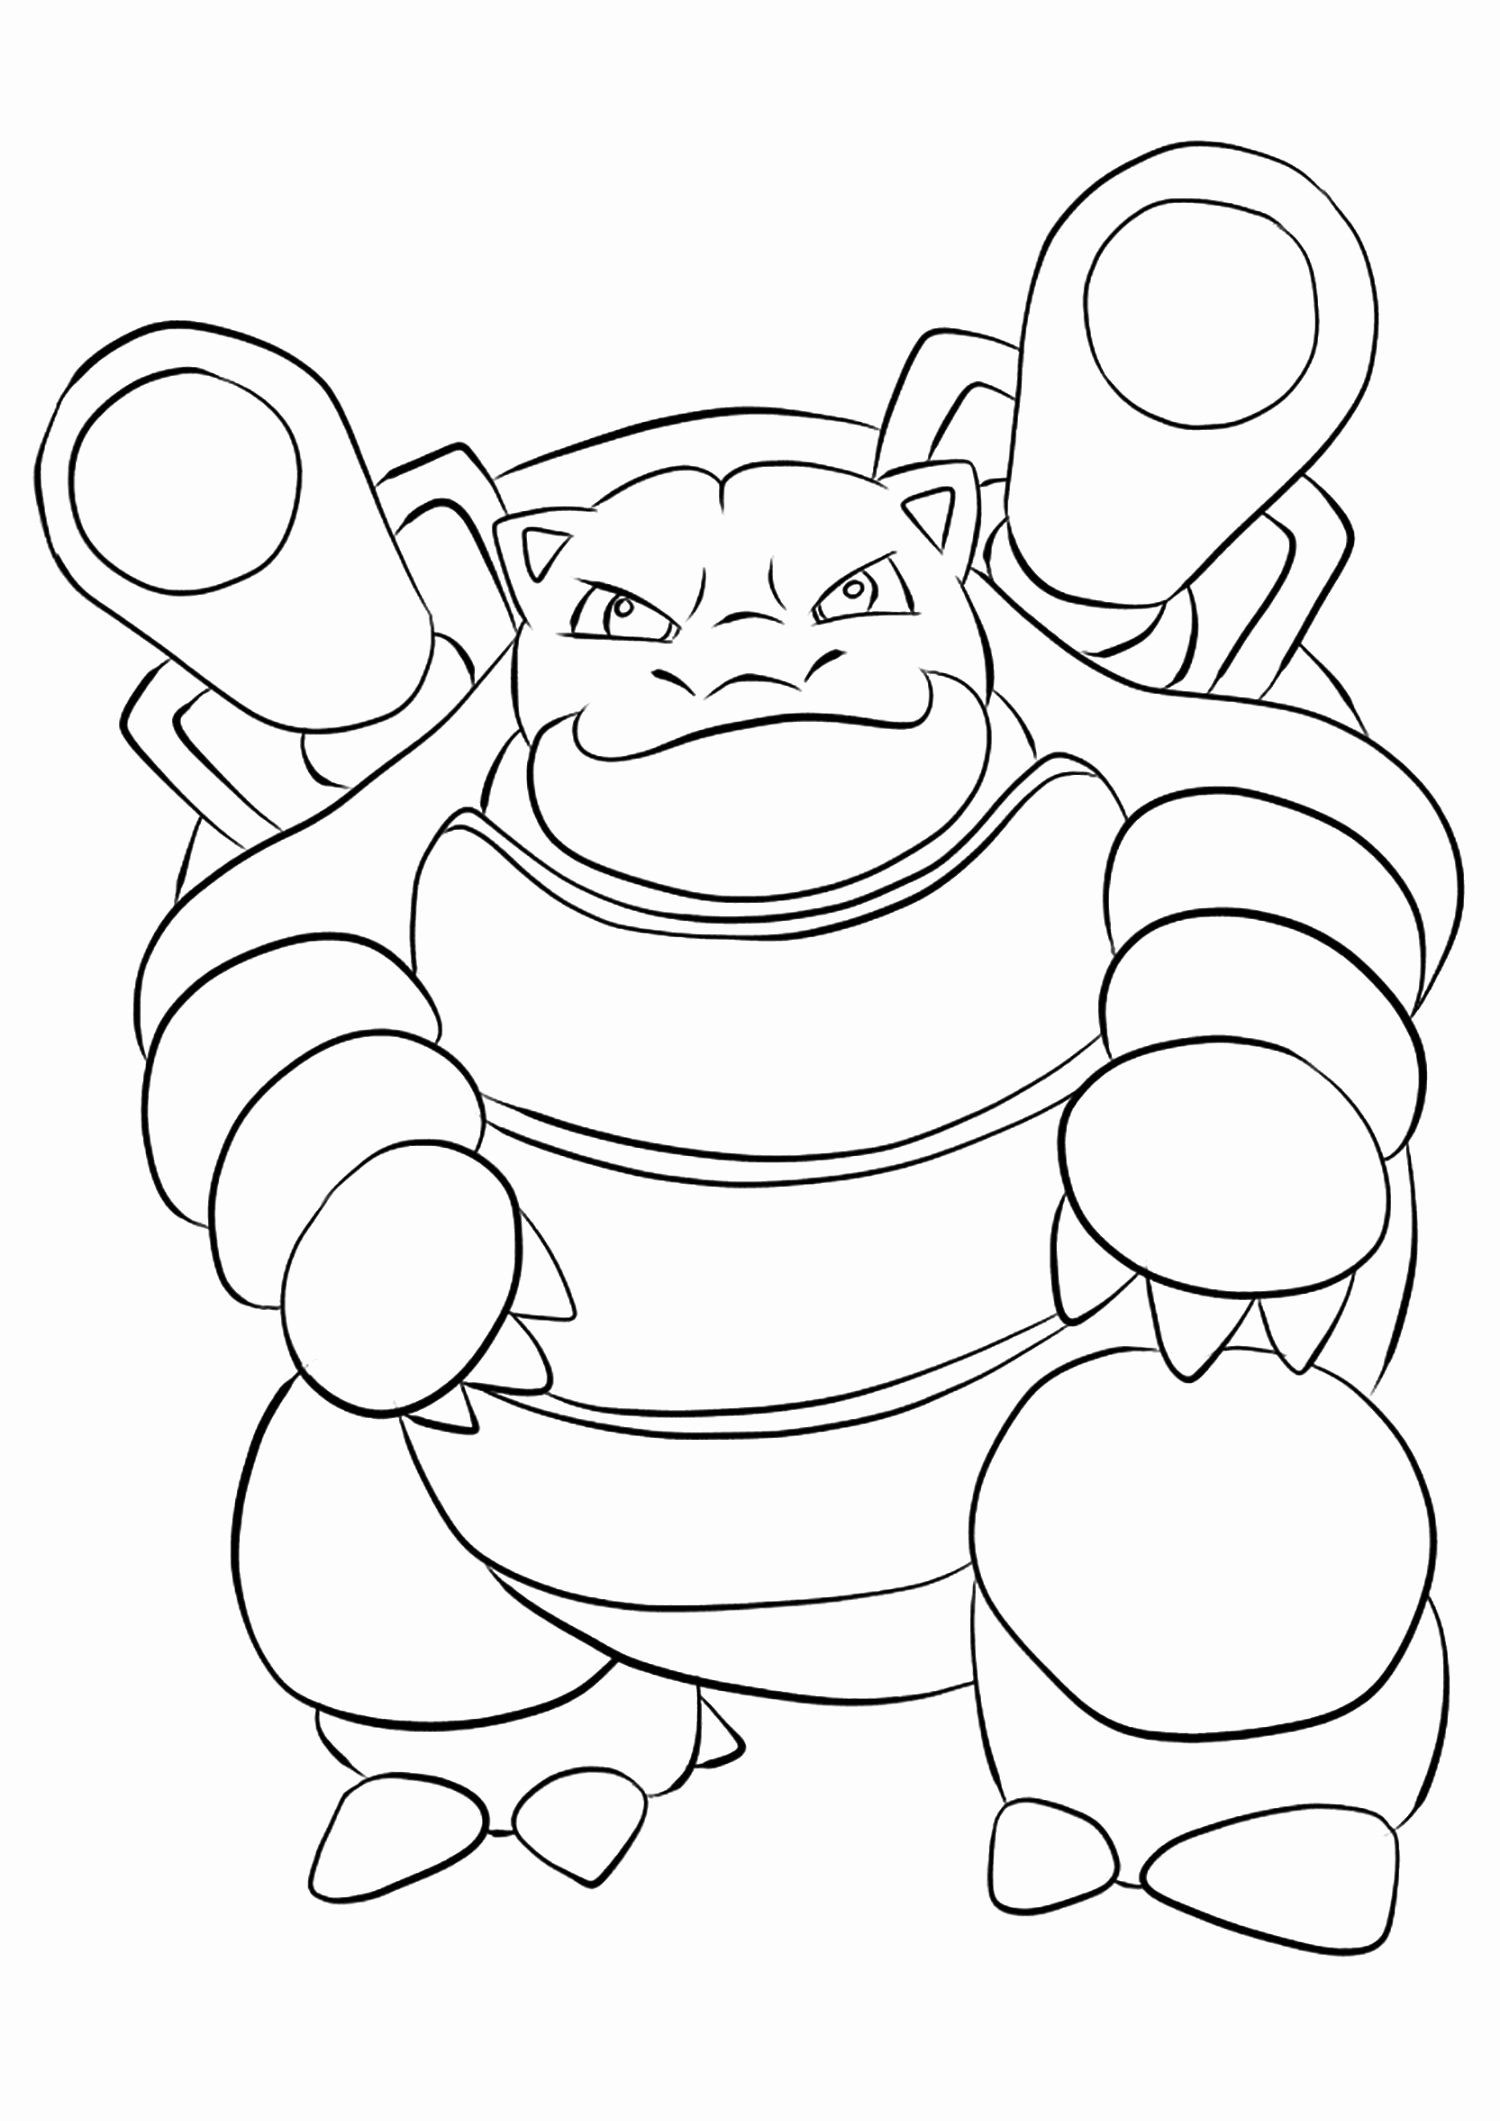 Mega Blastoise Coloring Page Best Of Pokemon Coloring Pages Blastoise Pokemon Coloring Pages Coloring Pages Pokemon Coloring Superhero Coloring Pages